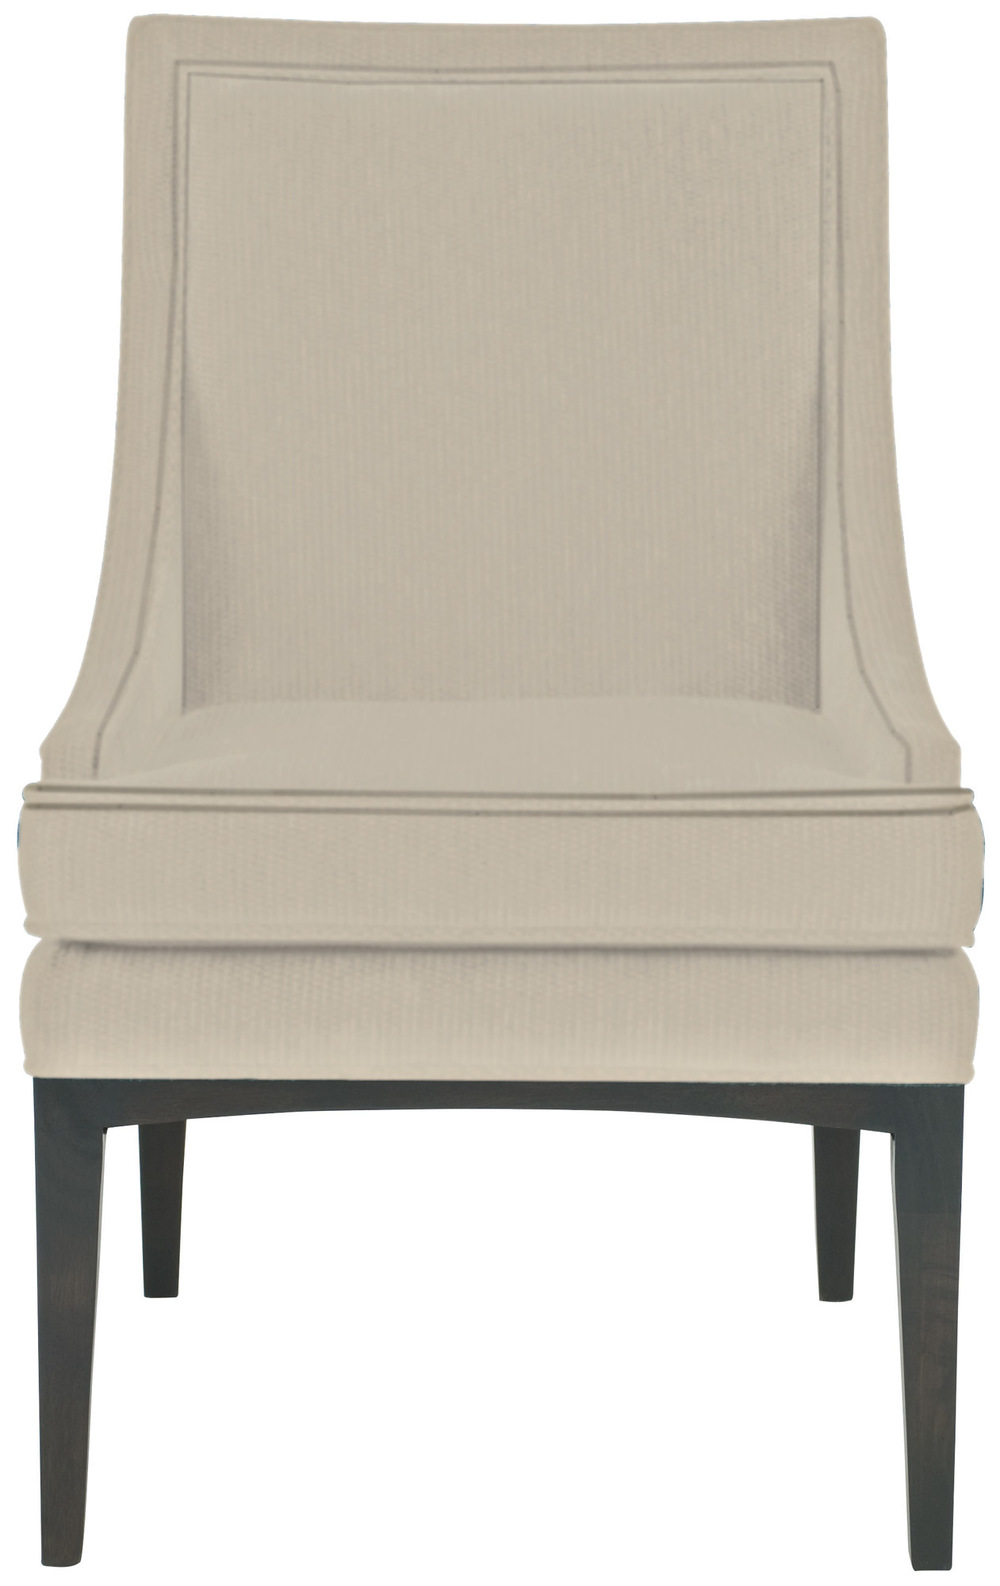 Bernhardt - Upholstered Chair